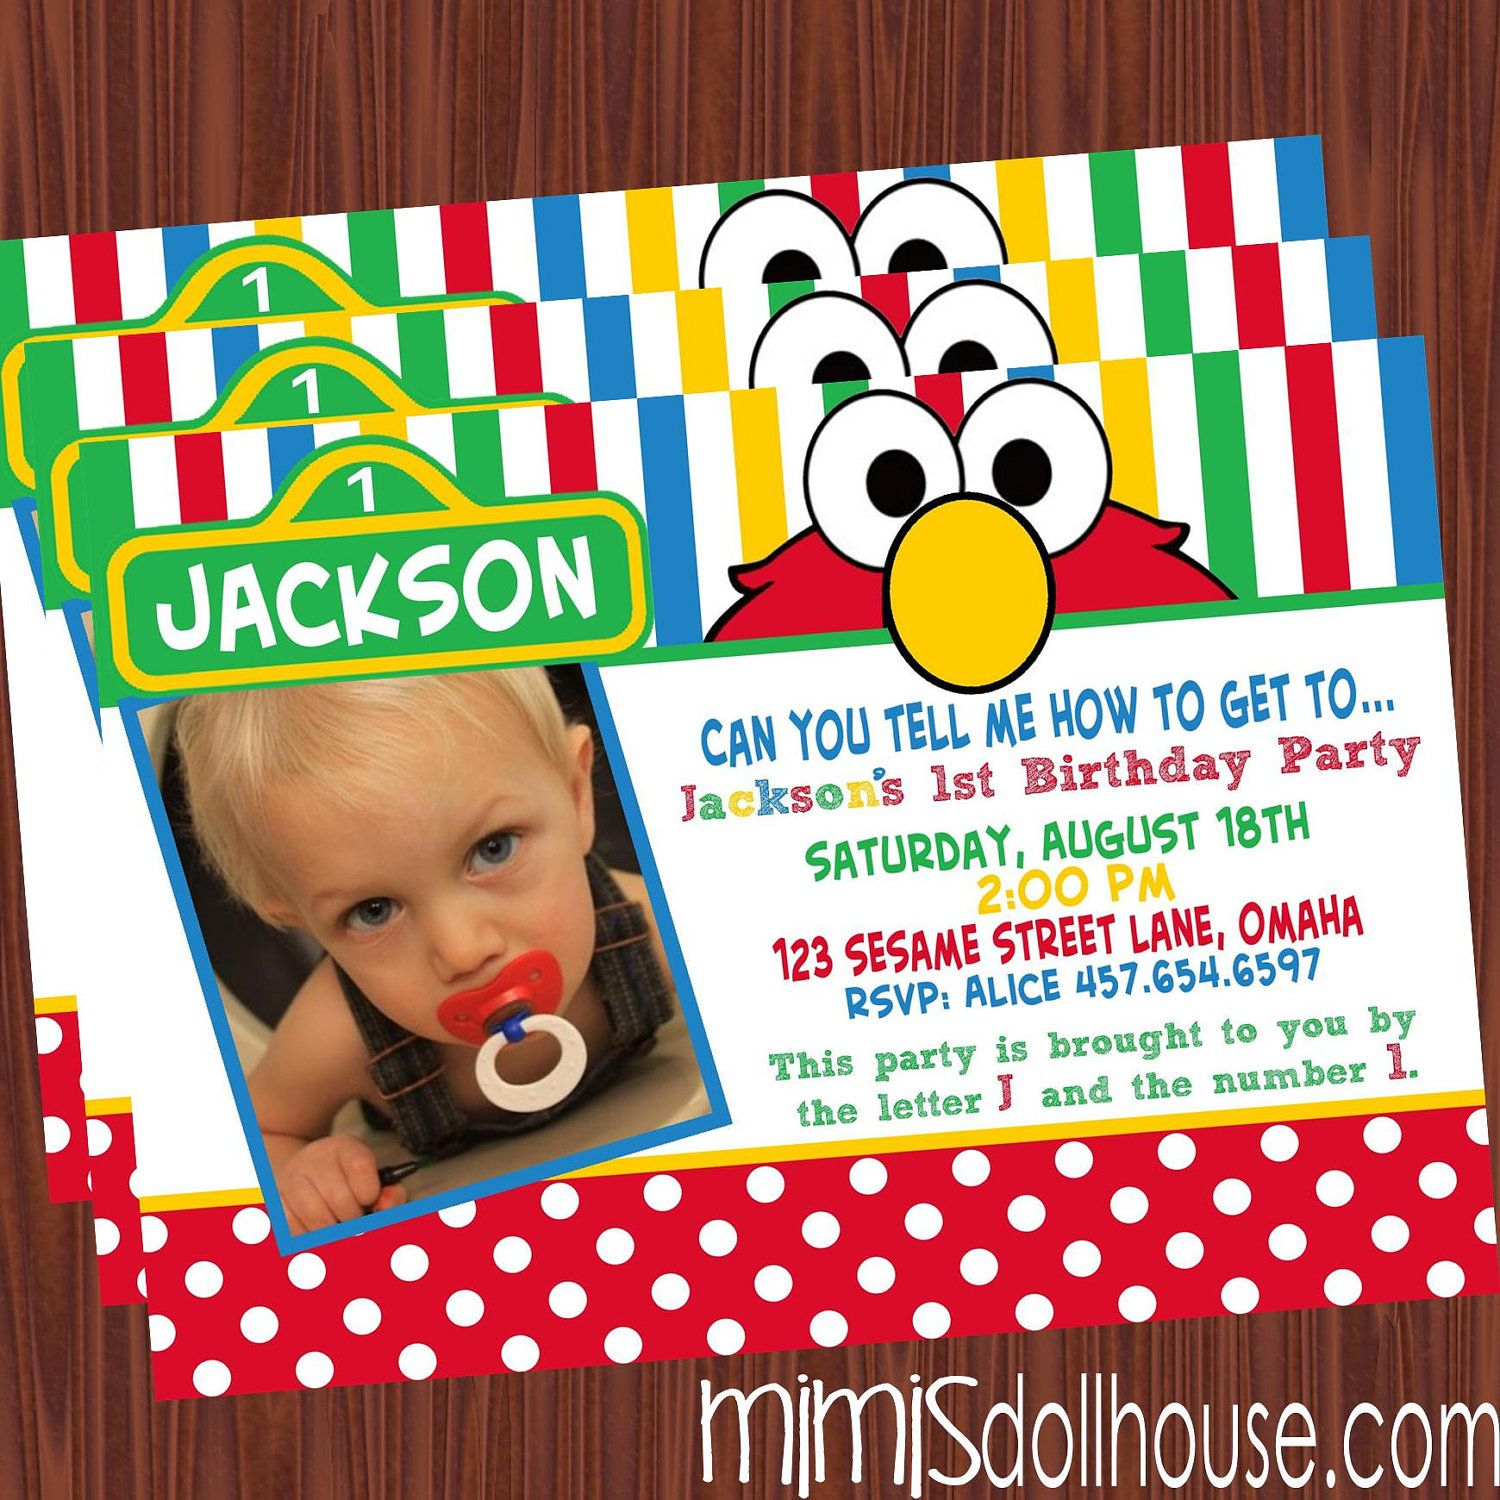 Elmo 1St Birthday Invitations is one of our best ideas you might choose for invitation design